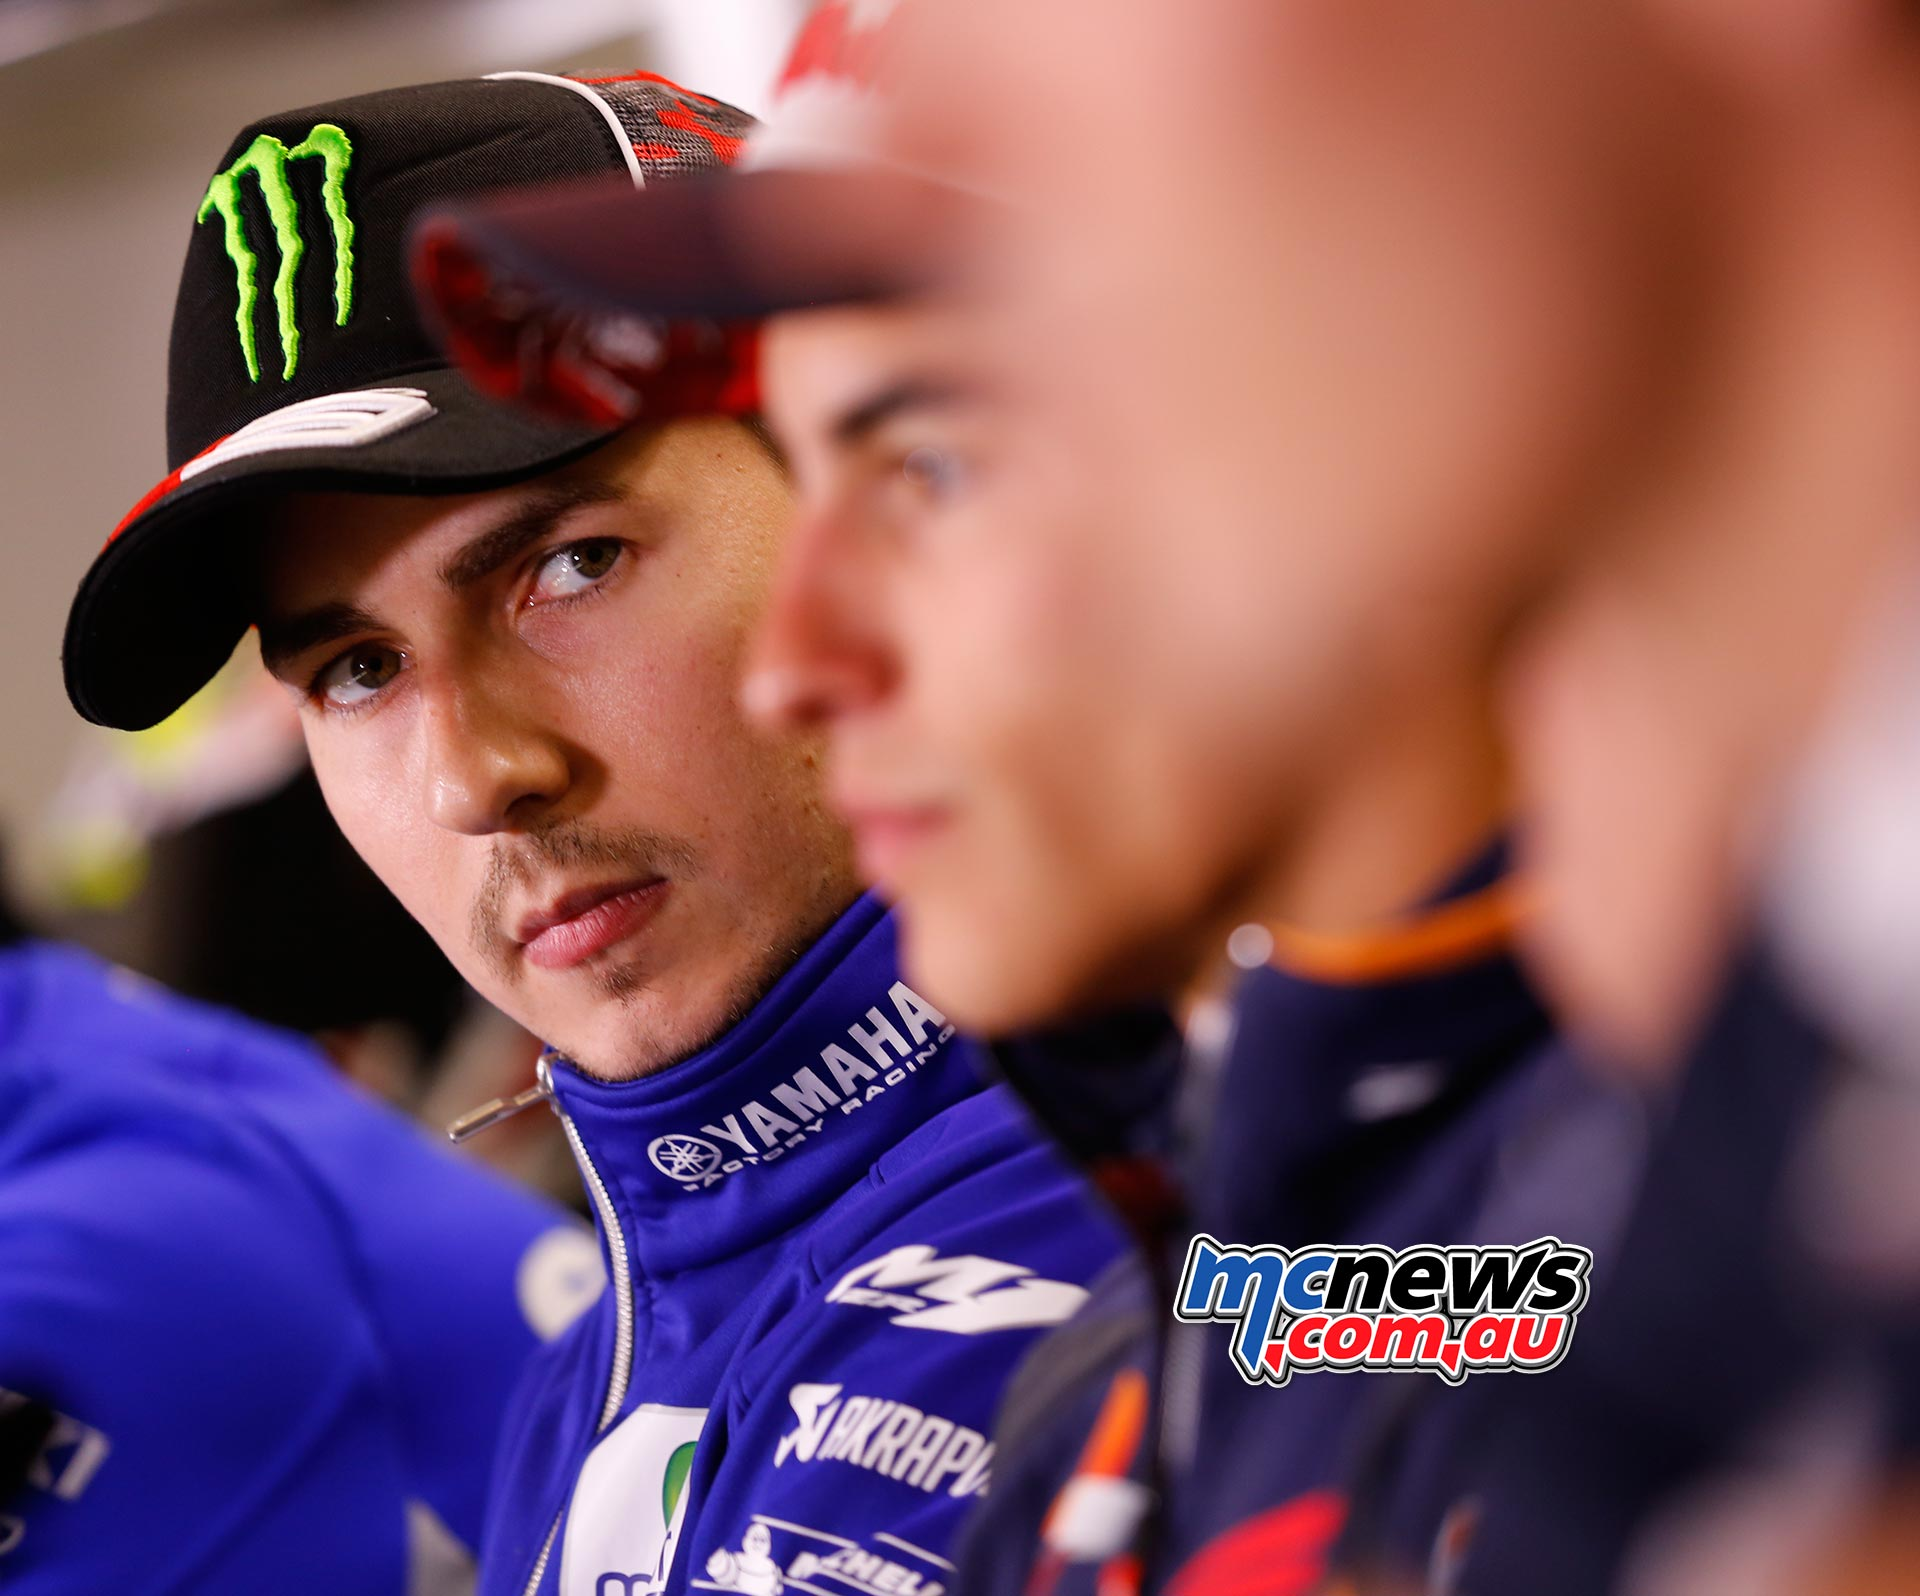 MotoGP 2016 - Round Five - Le Mans Press Conference - Jorge Lorenzo with Marc Marquez